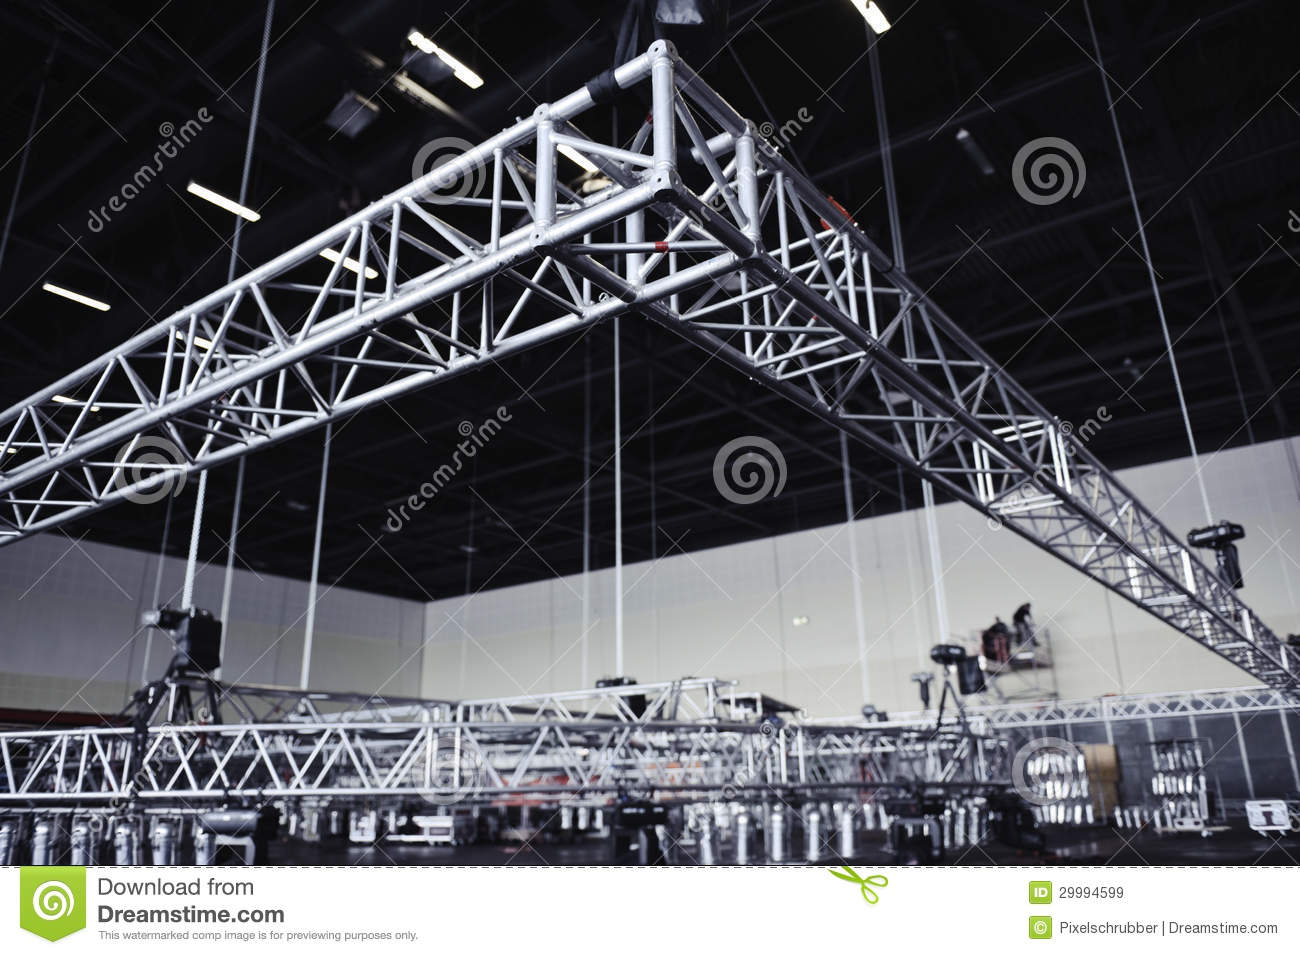 Rigging Truss Royalty Free Stock Images Image 29994599 : media event built up rigging truss 29994599 from www.dreamstime.com size 1300 x 955 jpeg 162kB